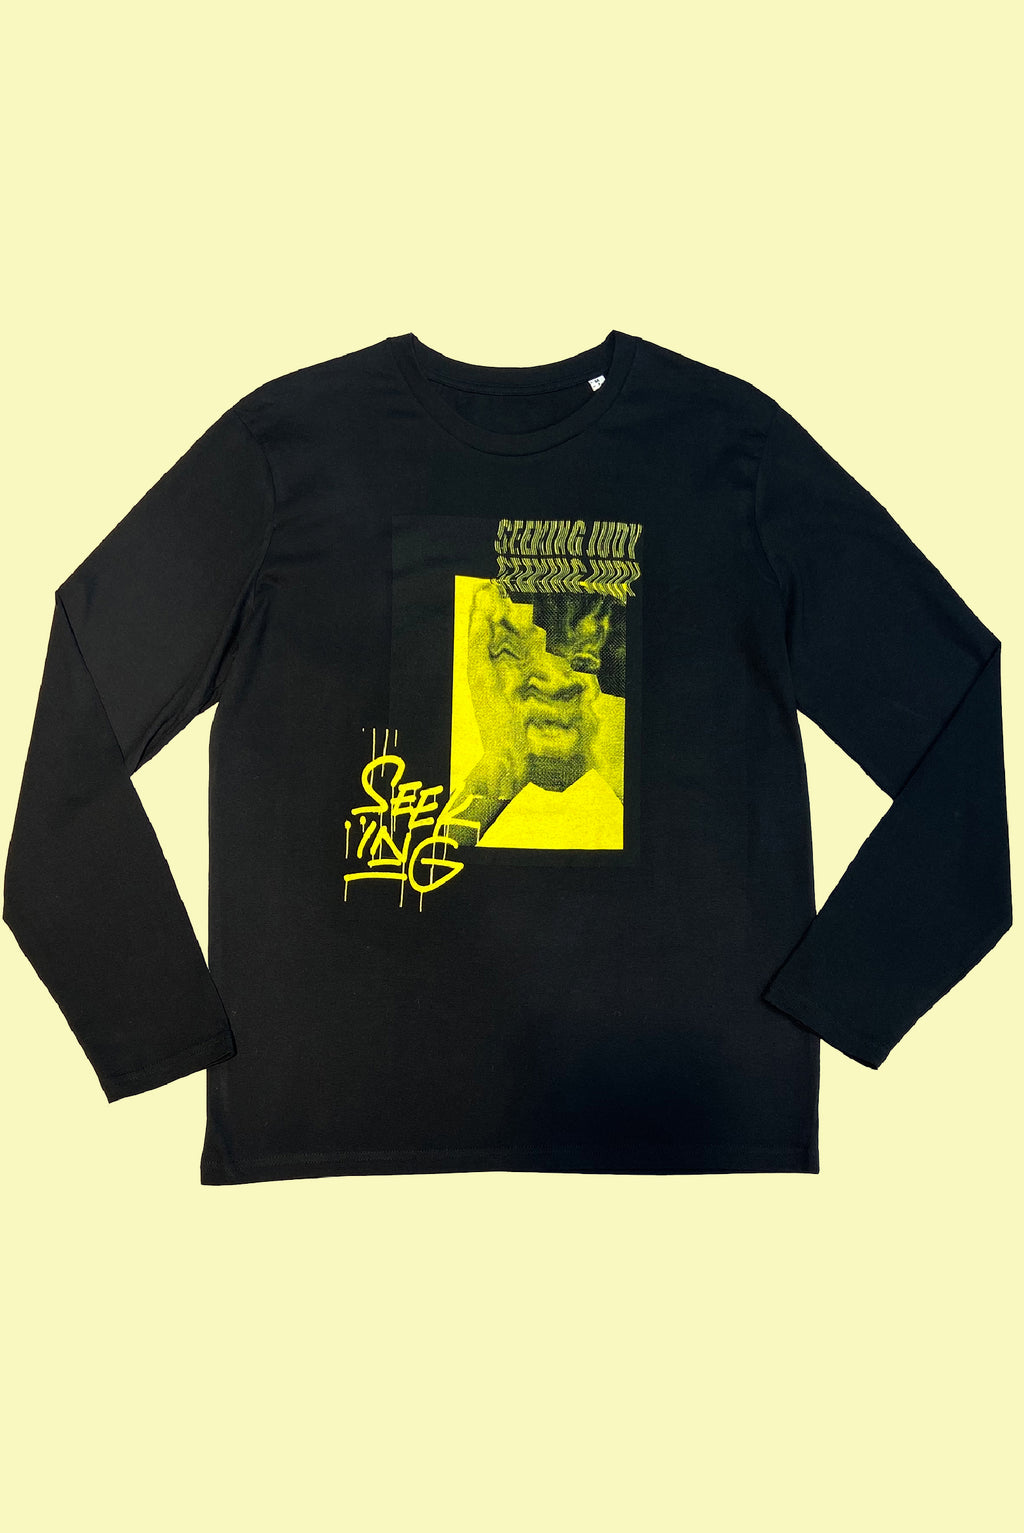 'Stressed Out' Organic black long sleeve T-shirt